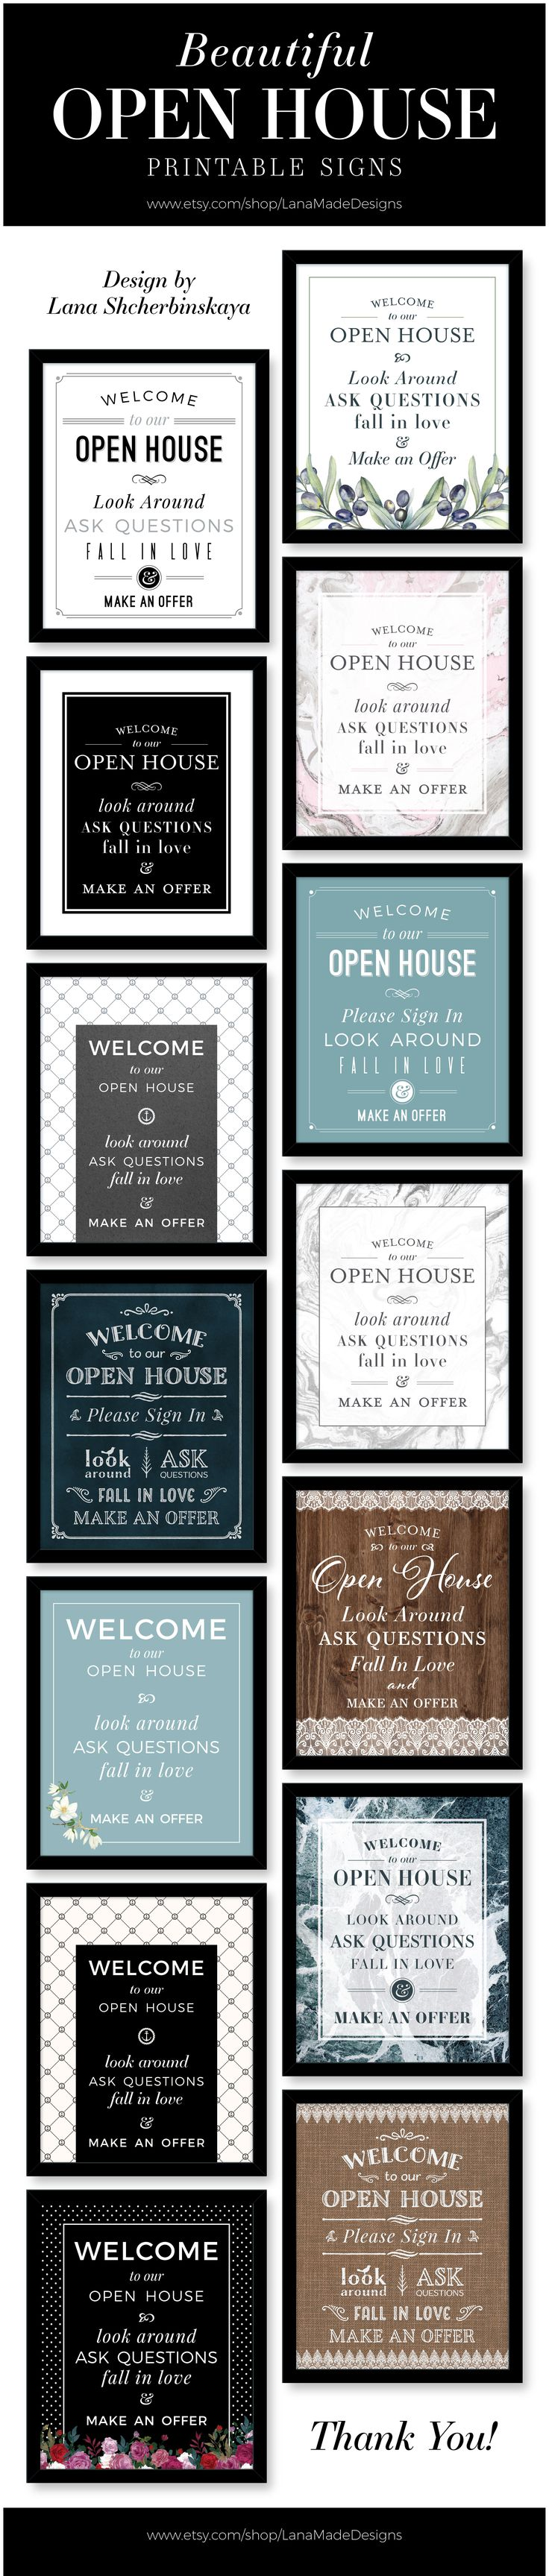 Beautiful Collection of Open House Printable Signs. These Signs are Perfect for any Open House.  Printables include Please Remove Your Shoes Signs, Please Leave a Card Signs, Please Sign In.  Check it out.  Choose any color you want. Stand out with professional, clean and unique design for your Open Houses!